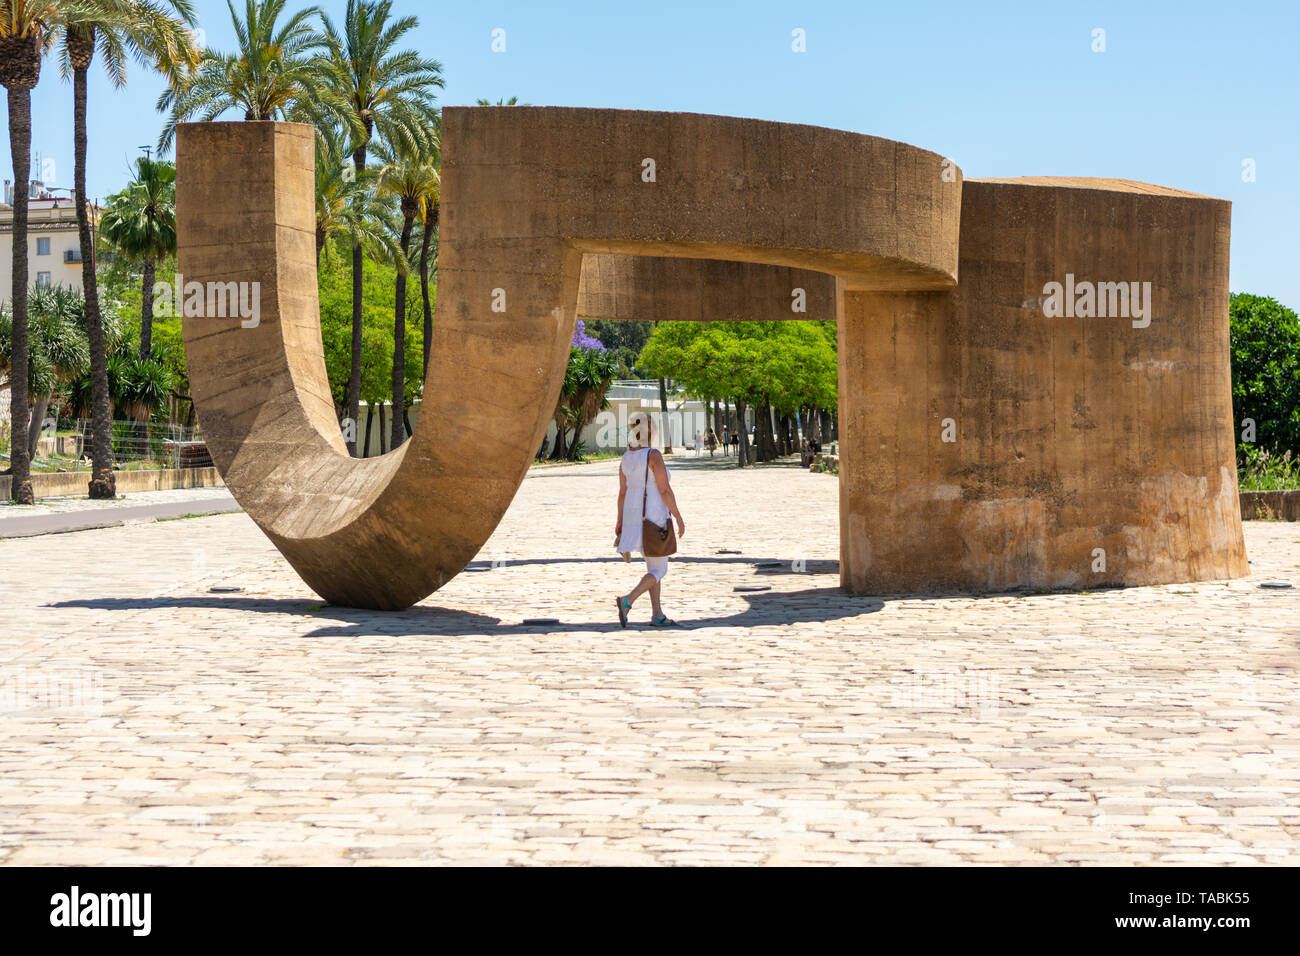 Woman walking though the geometric Tolerancia (Tolerance) monument, Seville, Andalusia region, Spain - Stock Image